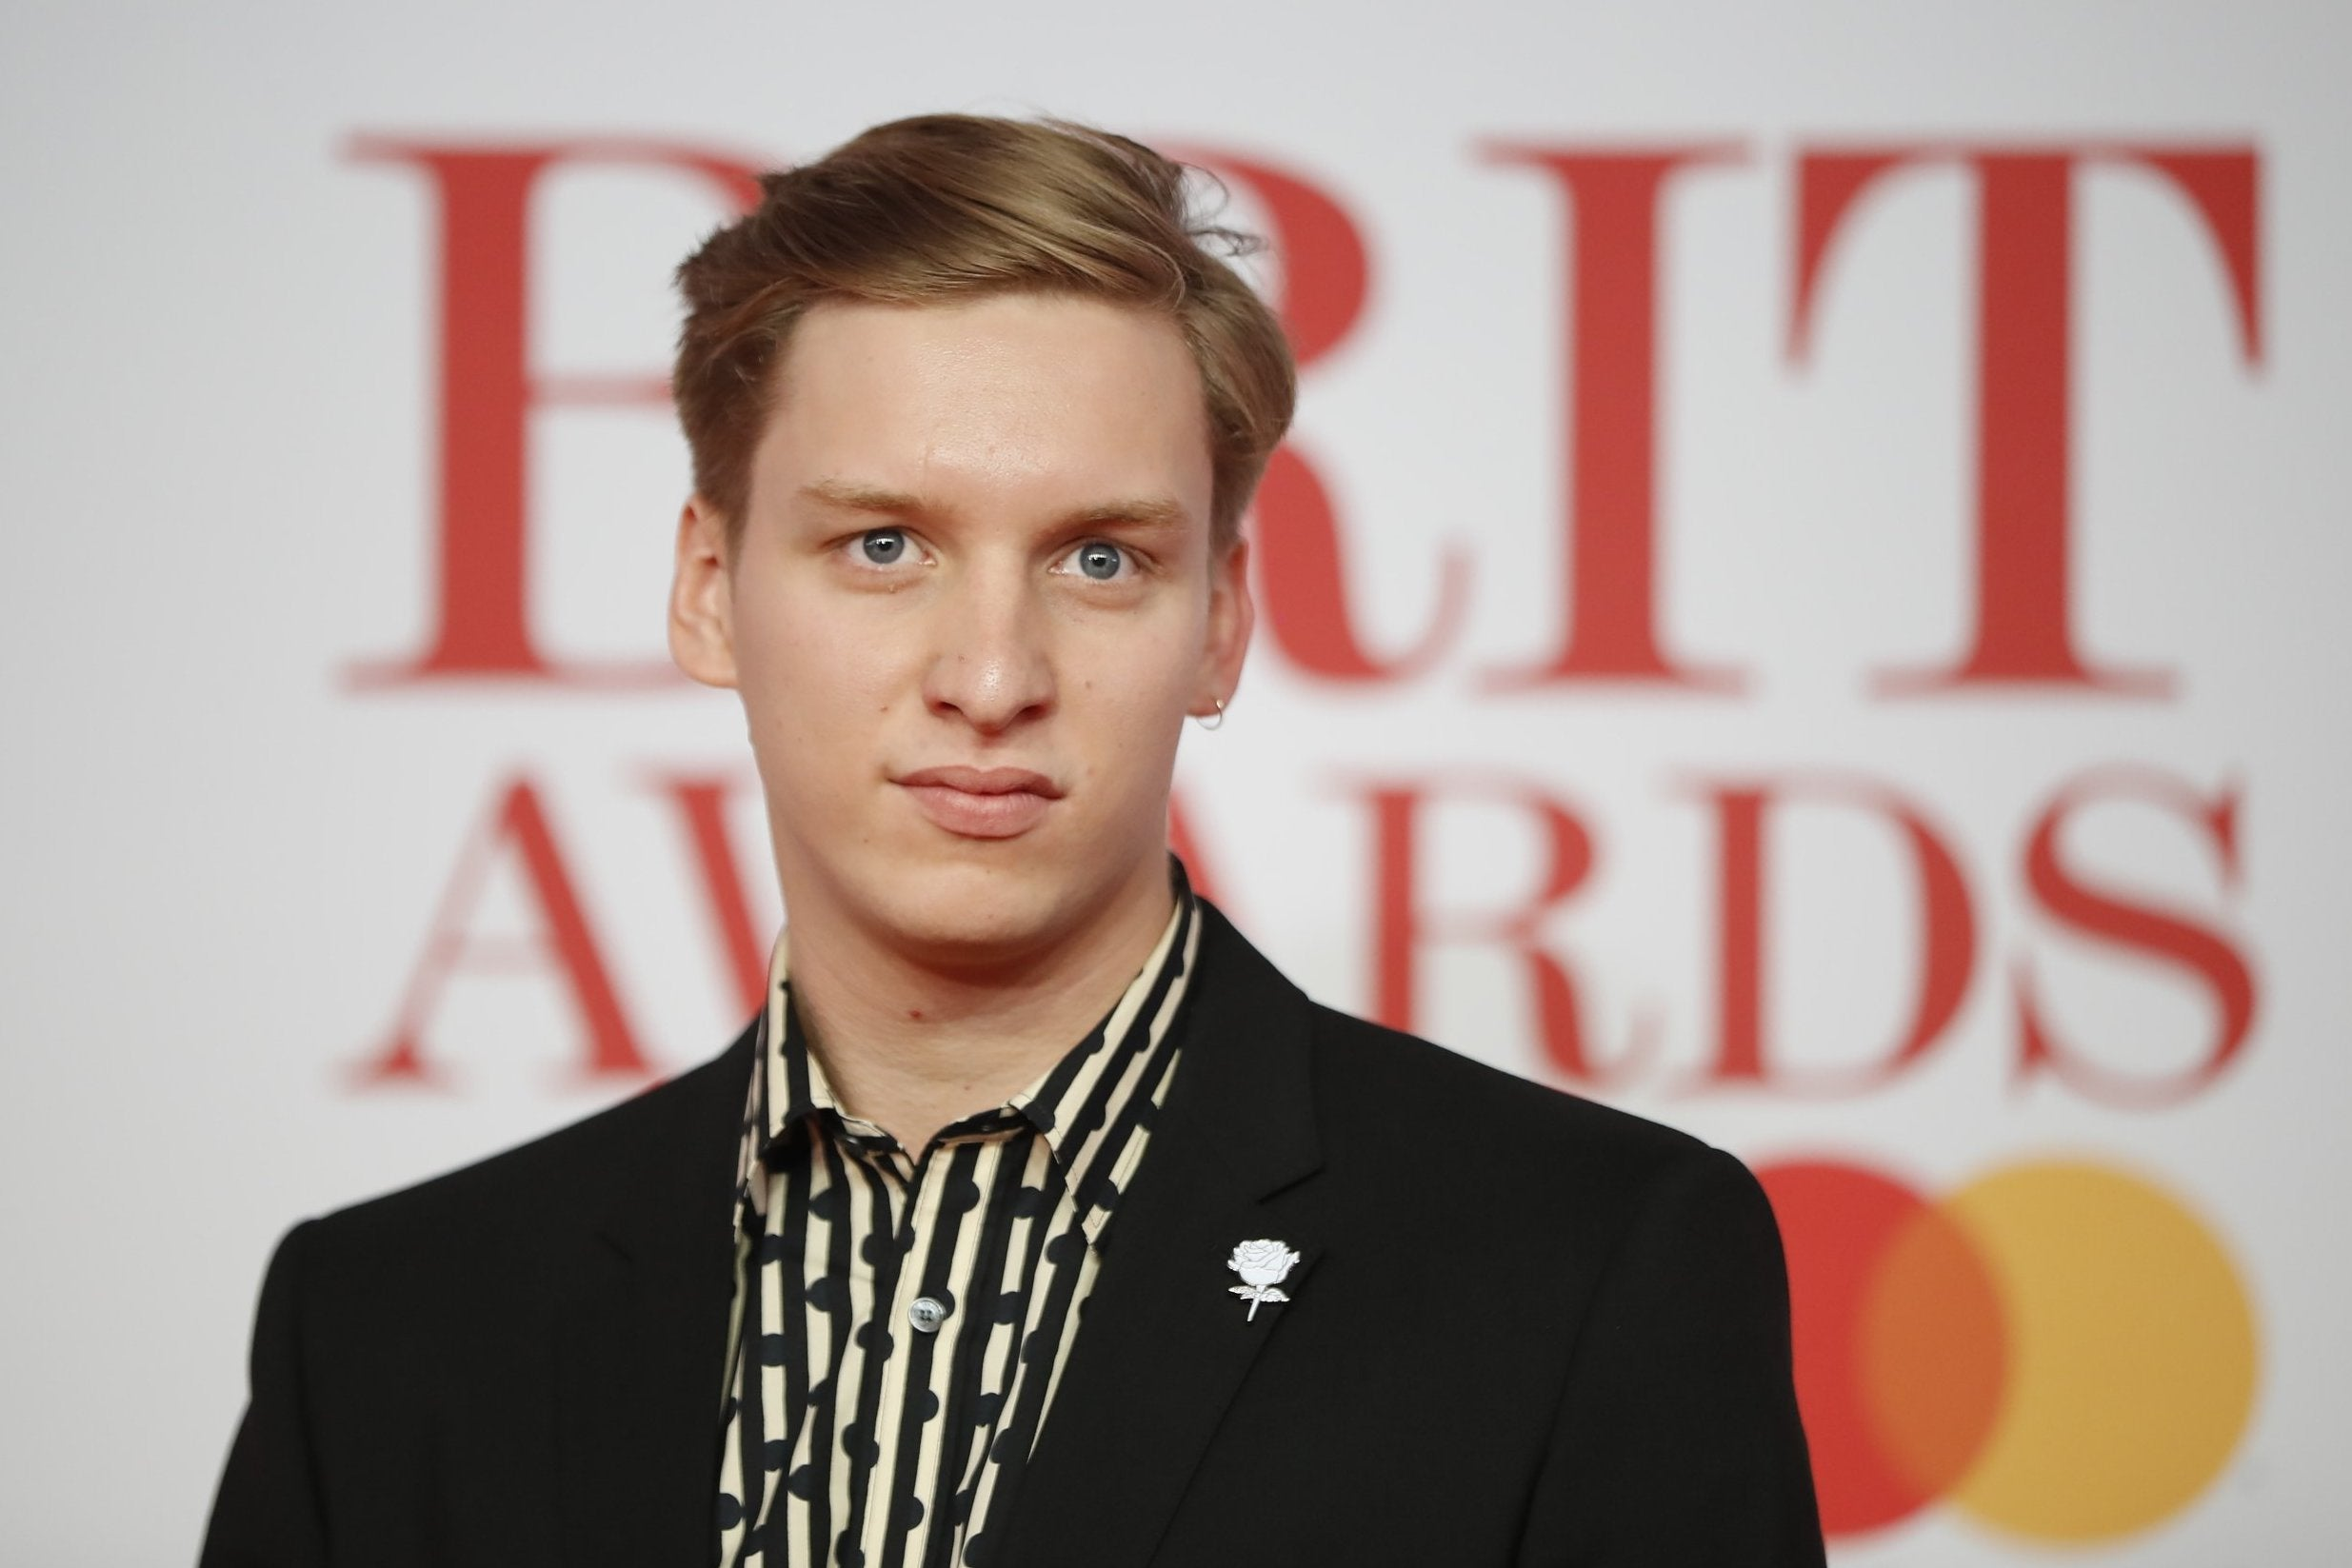 George Ezra Uk Tour How To Get Tickets For 2019 Dates